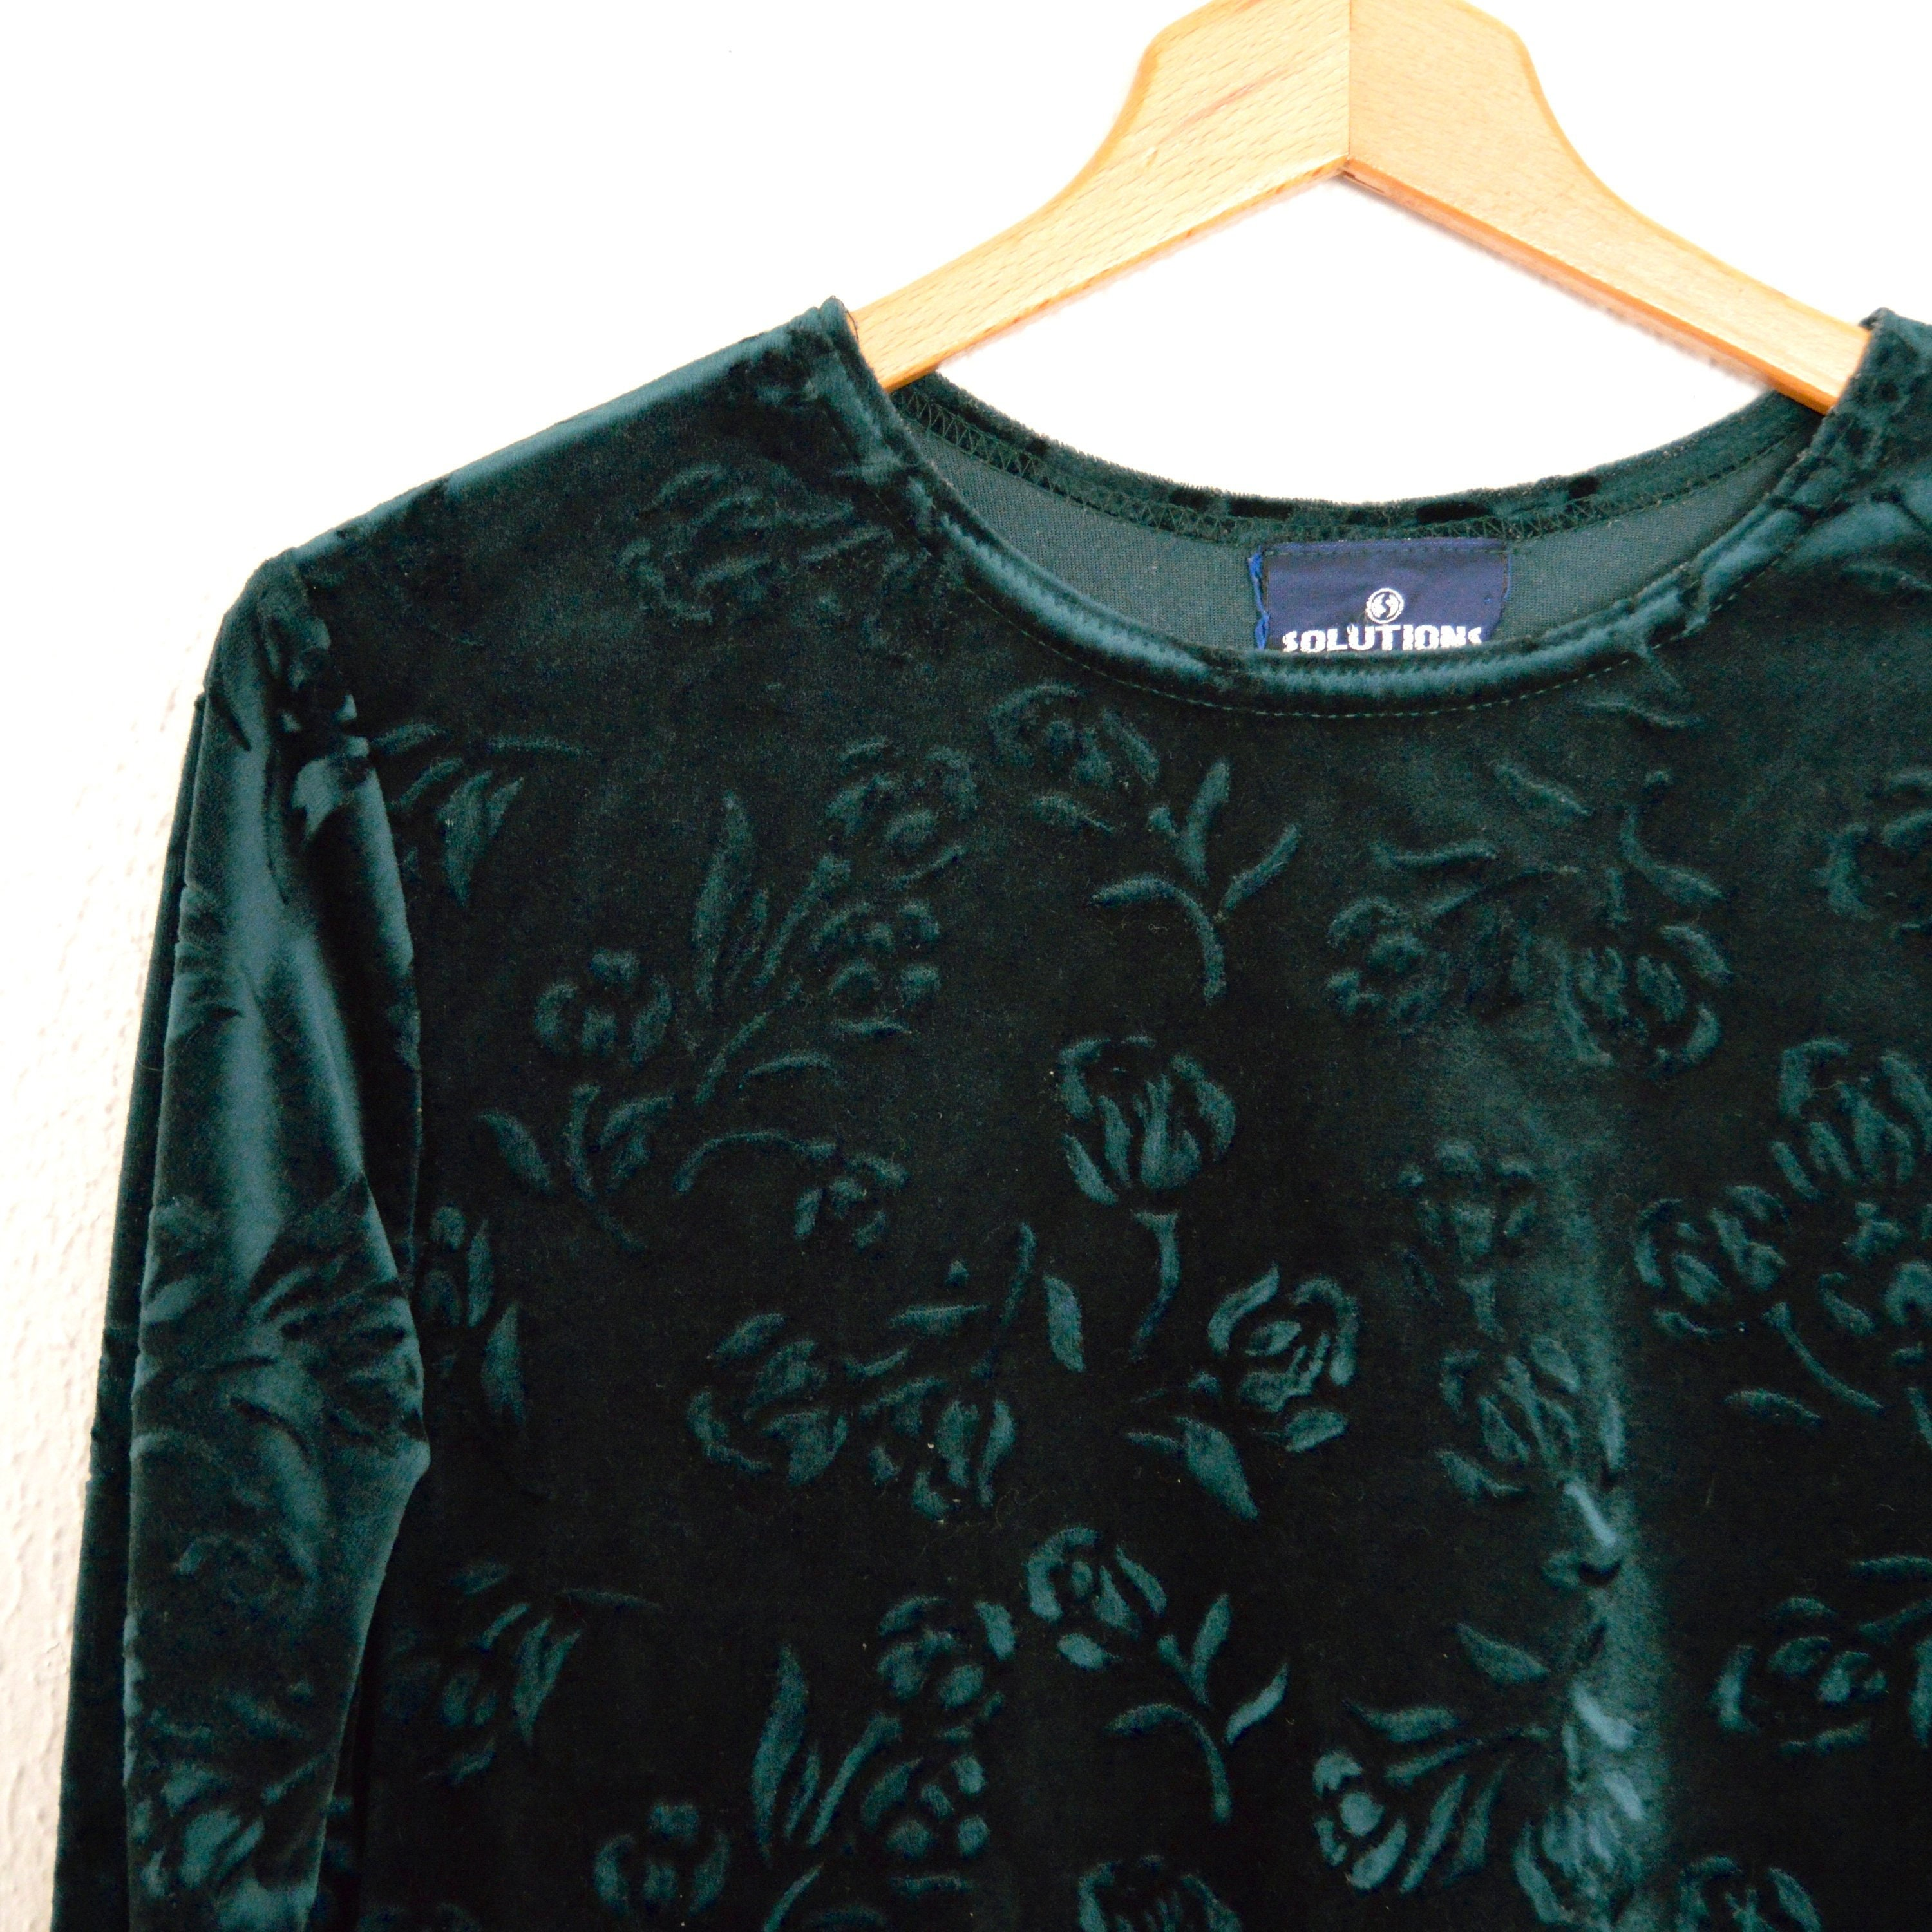 7b9621851d212 Green Velvet Shirt Womens Floral Velvet Long Sleeve Blouse